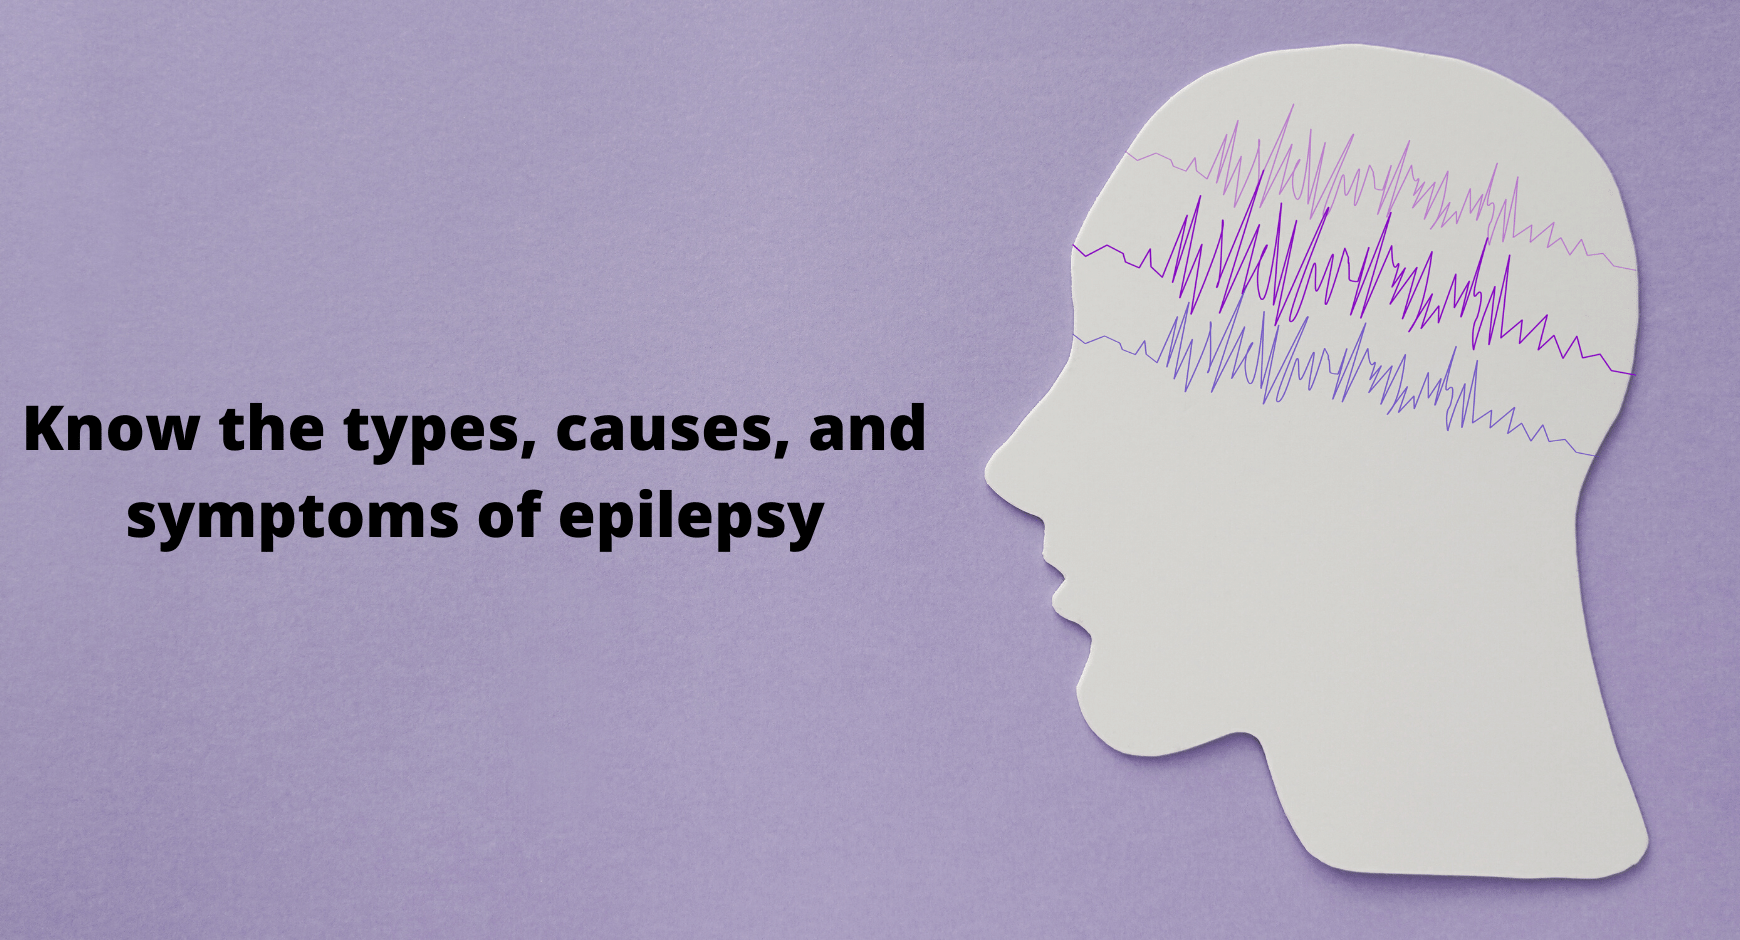 Know the types, causes, and symptoms of epilepsy